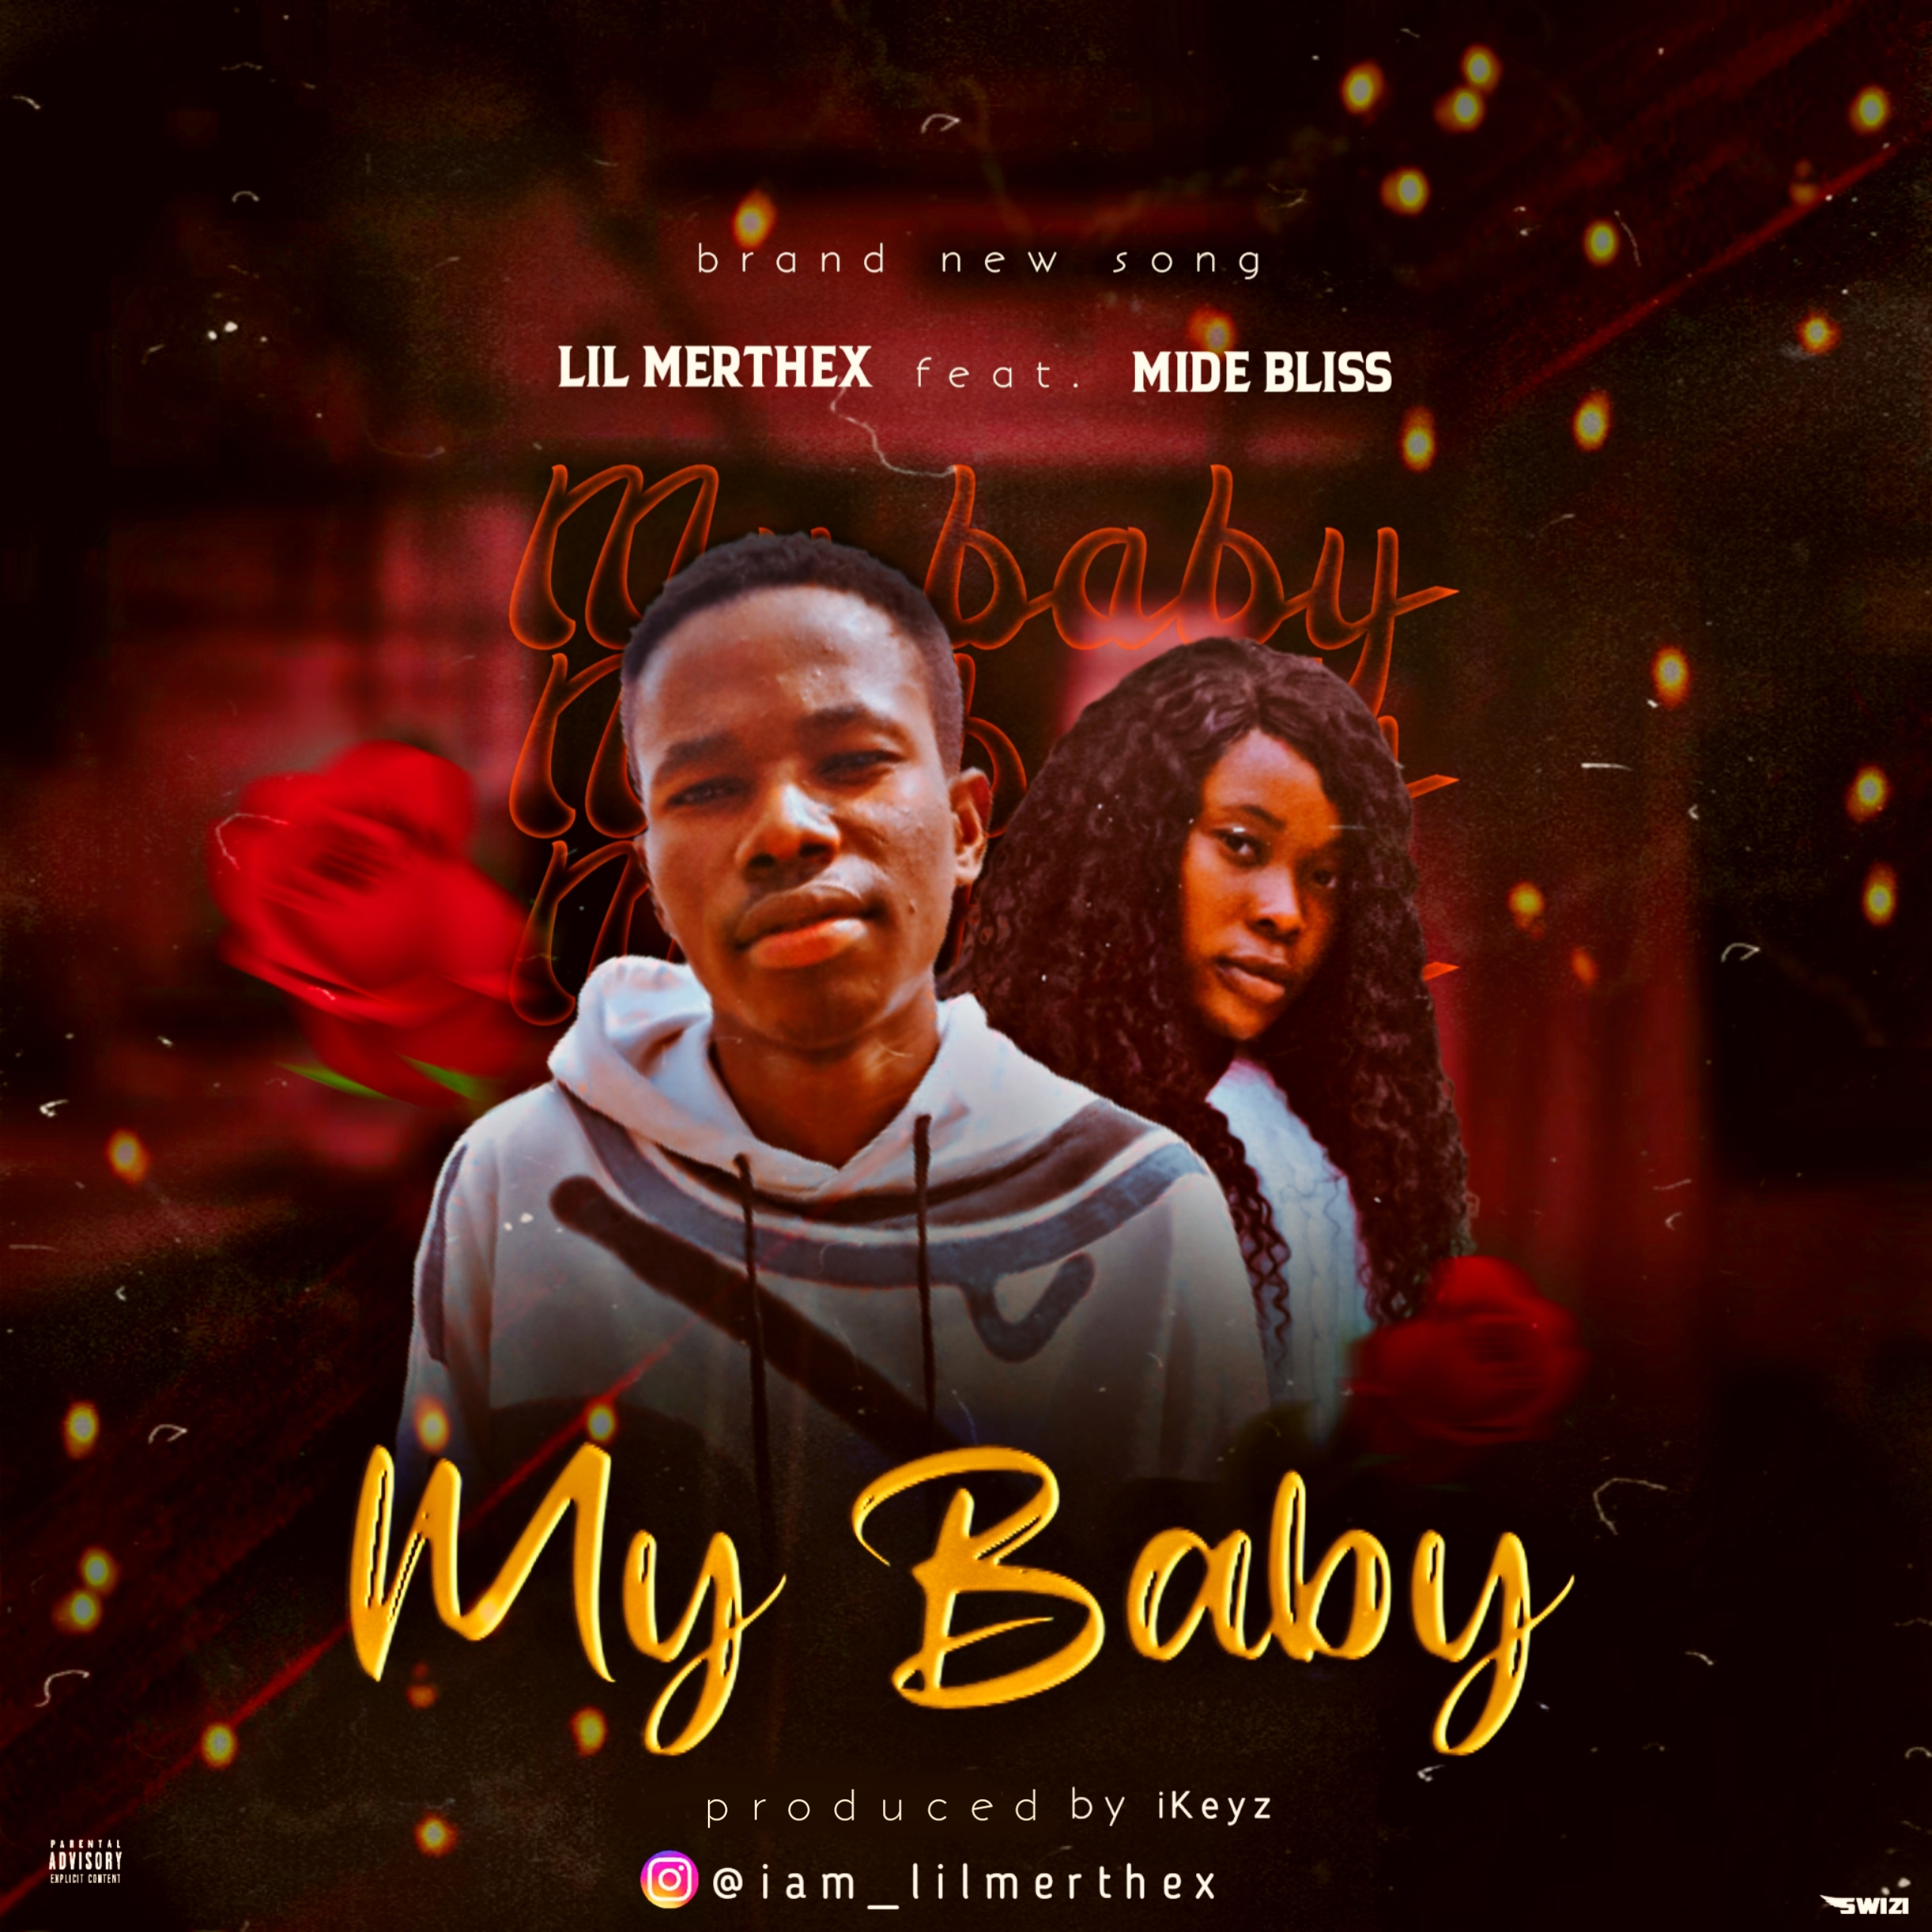 Lil Merthex - My Baby (feat. Midebliss)